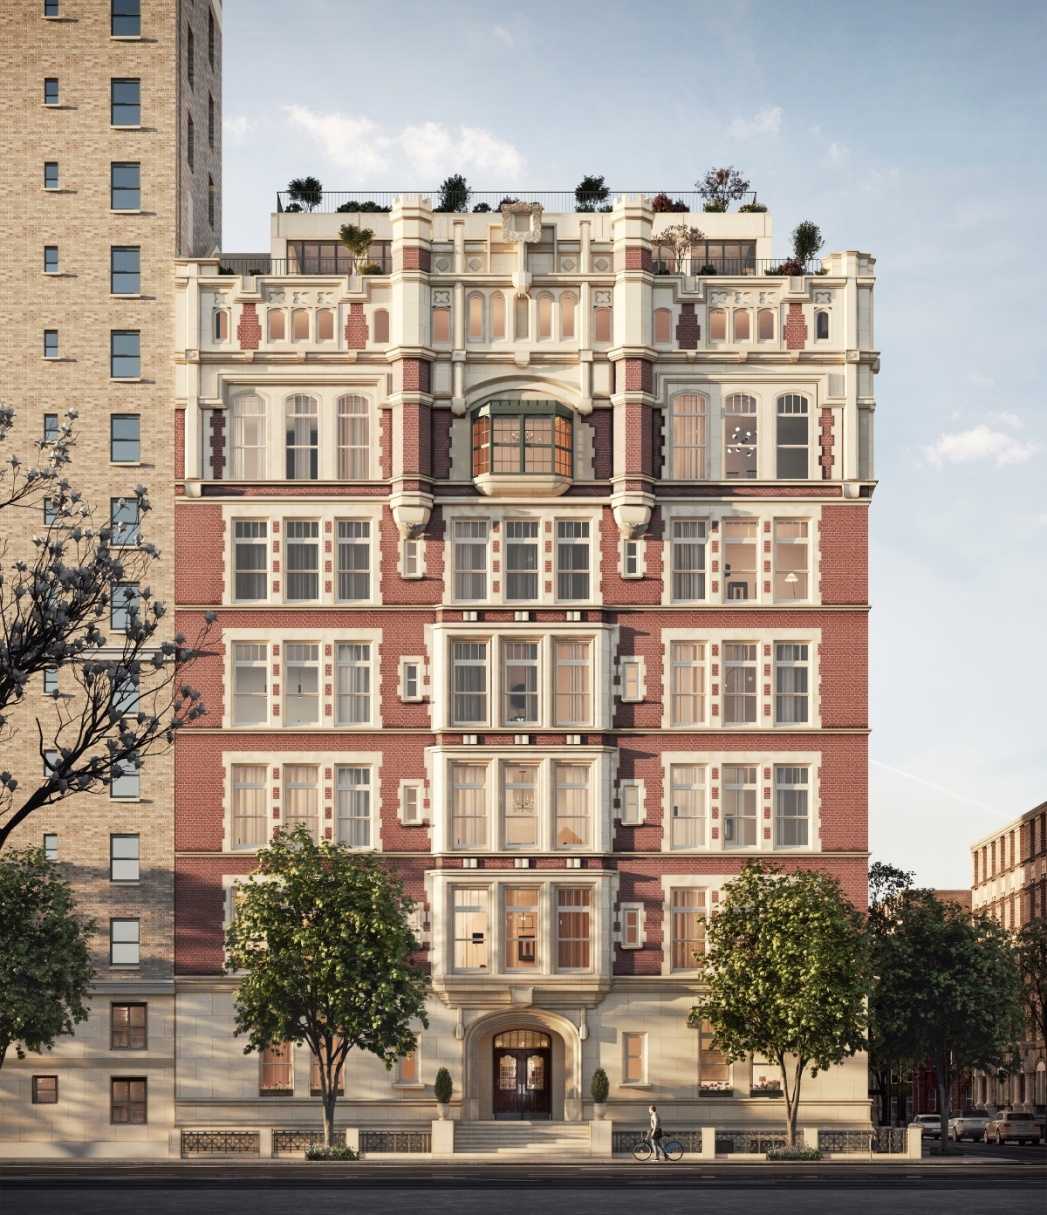 """The only new condominium in NYC with 18-½ foot ceilings in a 42-ft long Great Room, with towering arched windows, """"The Library"""" (2W) has 5 bedrooms, 5 en suite baths & a powder room. With a private landing & 3463 SF on two levels, the Library is one of 13 extraordinary, one-of-a-kind residences in Tamarkin Co.'s conversion of this landmarked former school. The kitchen features solid white fumed oak cabinets crafted by Christopher Peacock, with fluted glass cabinet fronts and Nanz hardware, and is open to the 37 ft Great Room providing a relaxed living and dining environment. Additional features in this absolutely gorgeous kitchen include white oak plank floors, polished Arabescato marble slab countertops and backsplash, vented Wolf 48"""" dual fuel range, Sub-Zero fridge & separate freezer, wine storage, microwave and warming drawers, two dishwashers, Lefroy Brooks faucets, garbage disposal, pot filler & more. On this floor are 3 en suite bedrooms, a powder room, large pantry, butler's pantry and laundry room. En suite secondary baths are outfitted with the highest quality stone & hardware.   Upstairs, on the mezzanine level, the light-filled, south-facing master features two walk-in closets, and a luxurious bath with Calacatta gold marble slabs, custom white oak vanities by Christopher Peacock, double sinks with Lefroy Brooks fixtures, Zuma soaking tub, radiant-heat floors, towel warmers, steam shower & Toto Neorest smart toilet. This level overlooks the Kitchen and Great Room, making for a dramatic double height experience.  Amenities include a 24/7 attended lobby with refrigerated storage, bike room, and stroller valet. The day lit gym features state-of-the-art equipment & the rec room features a wet bar, pool table, dart board, lounge chairs, and large-screen TV.   The complete offering terms are in an offering plan available from the sponsor, file #CD17-0364. Co-exclusive."""